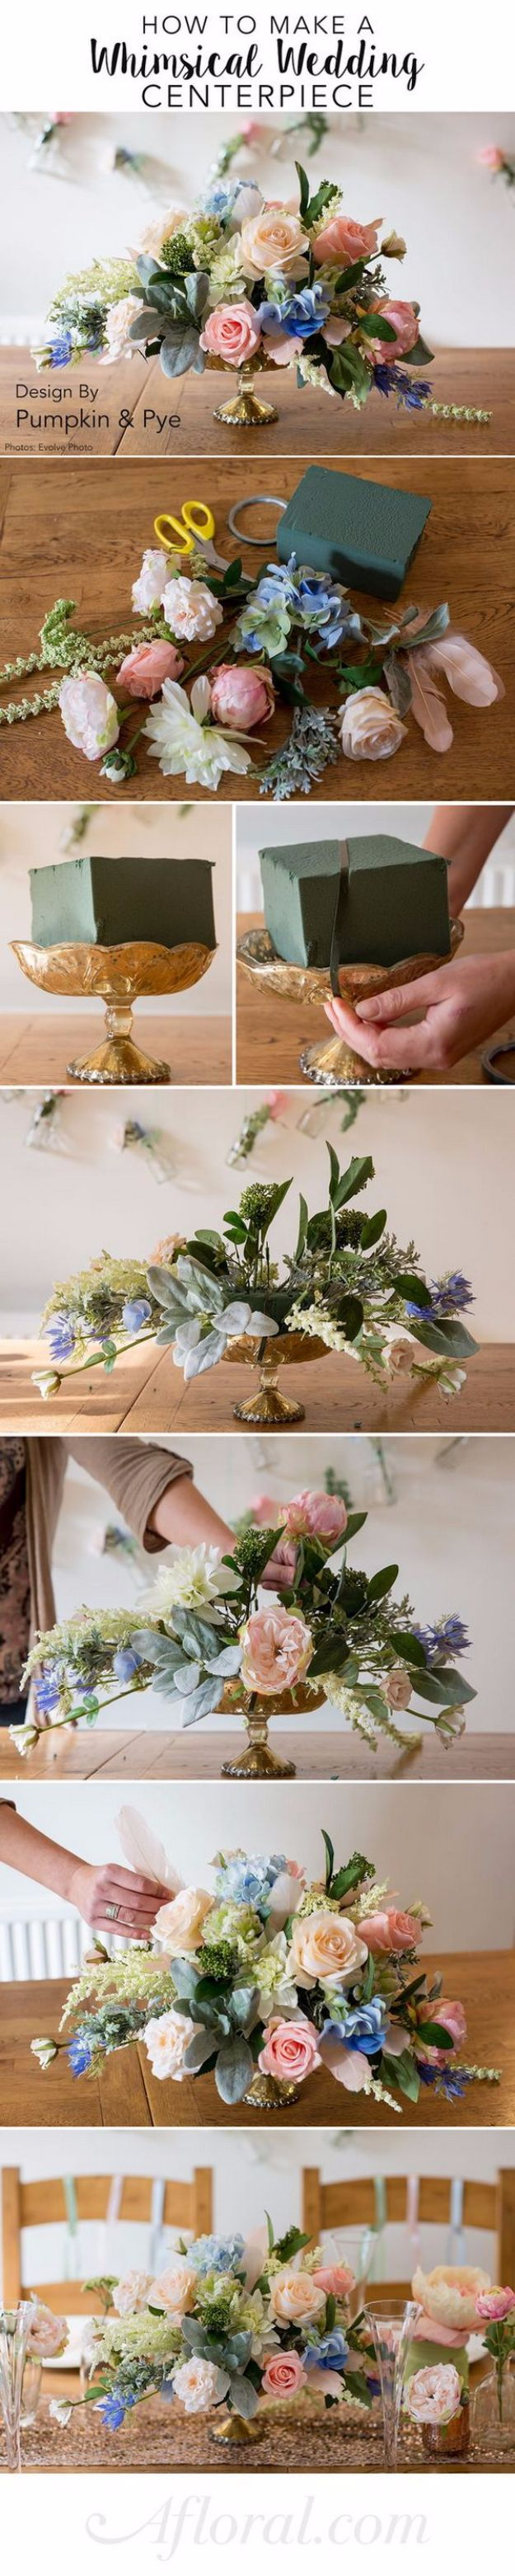 33 best diy wedding centerpieces you can make on a budget diy wedding centerpieces diy whimsical wedding centerpiece do it yourself ideas for brides and solutioingenieria Images